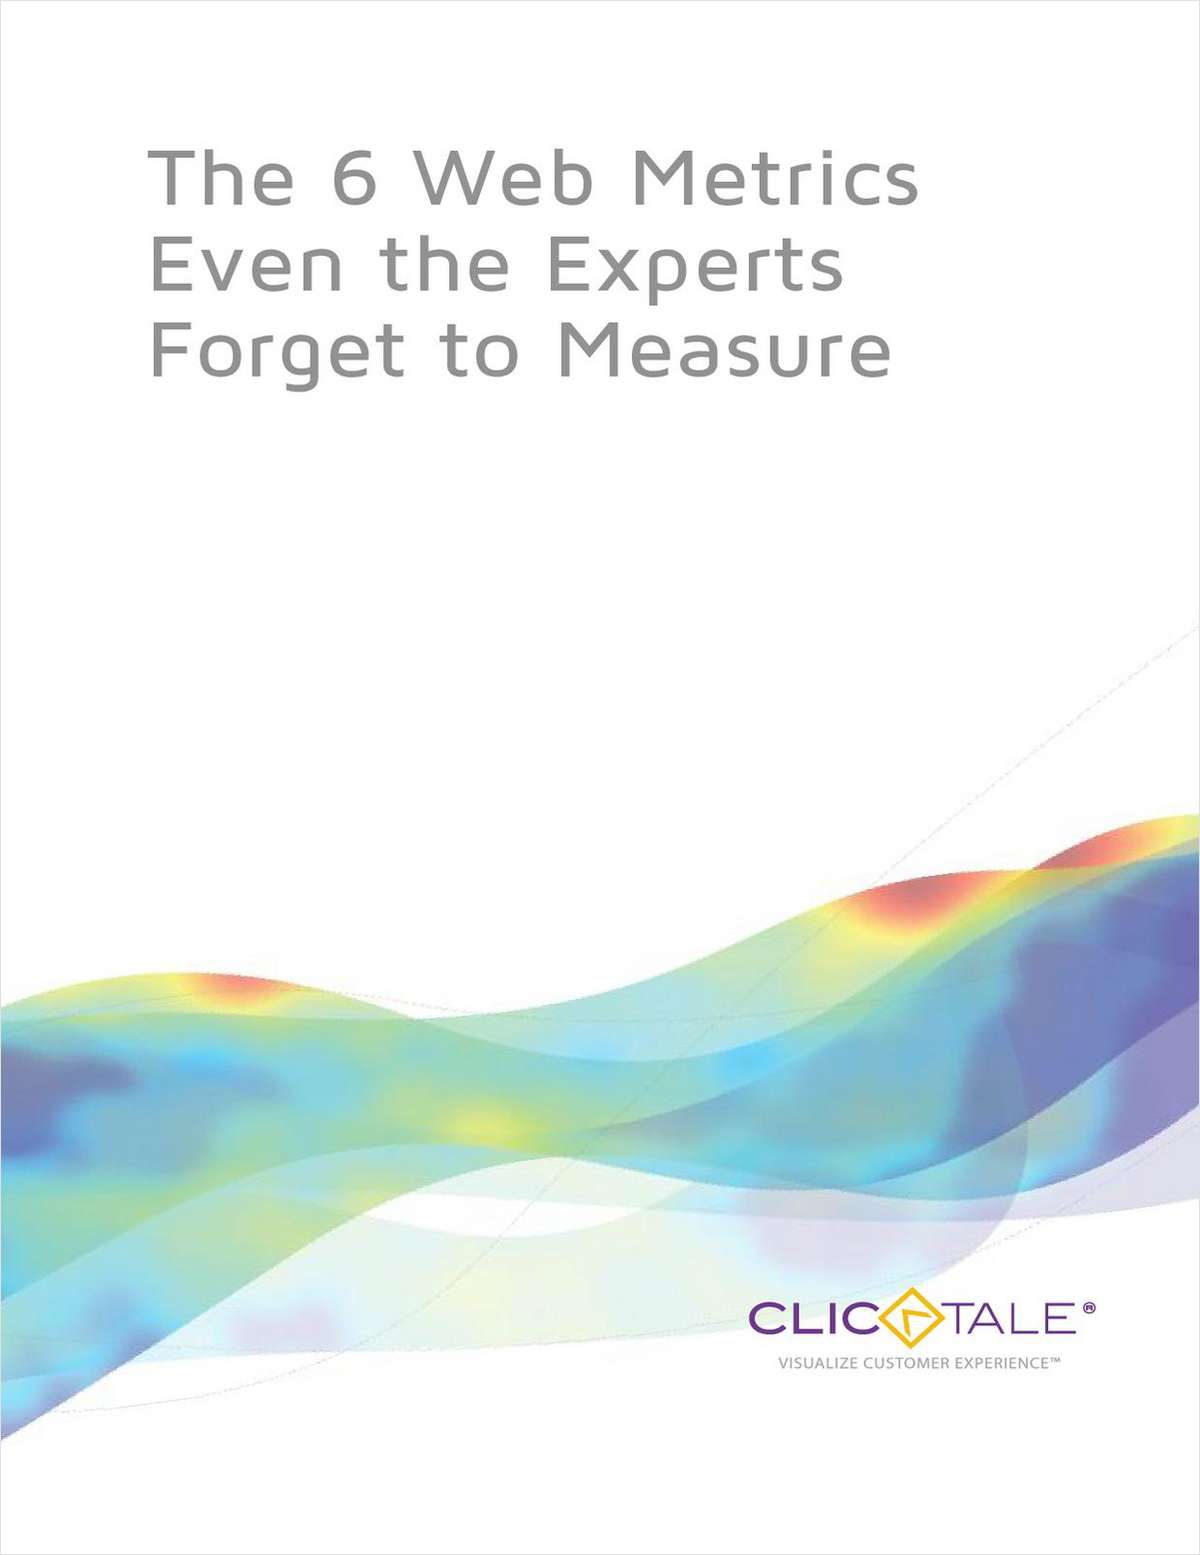 The 6 Web Metrics Even the Experts Forget to Measure